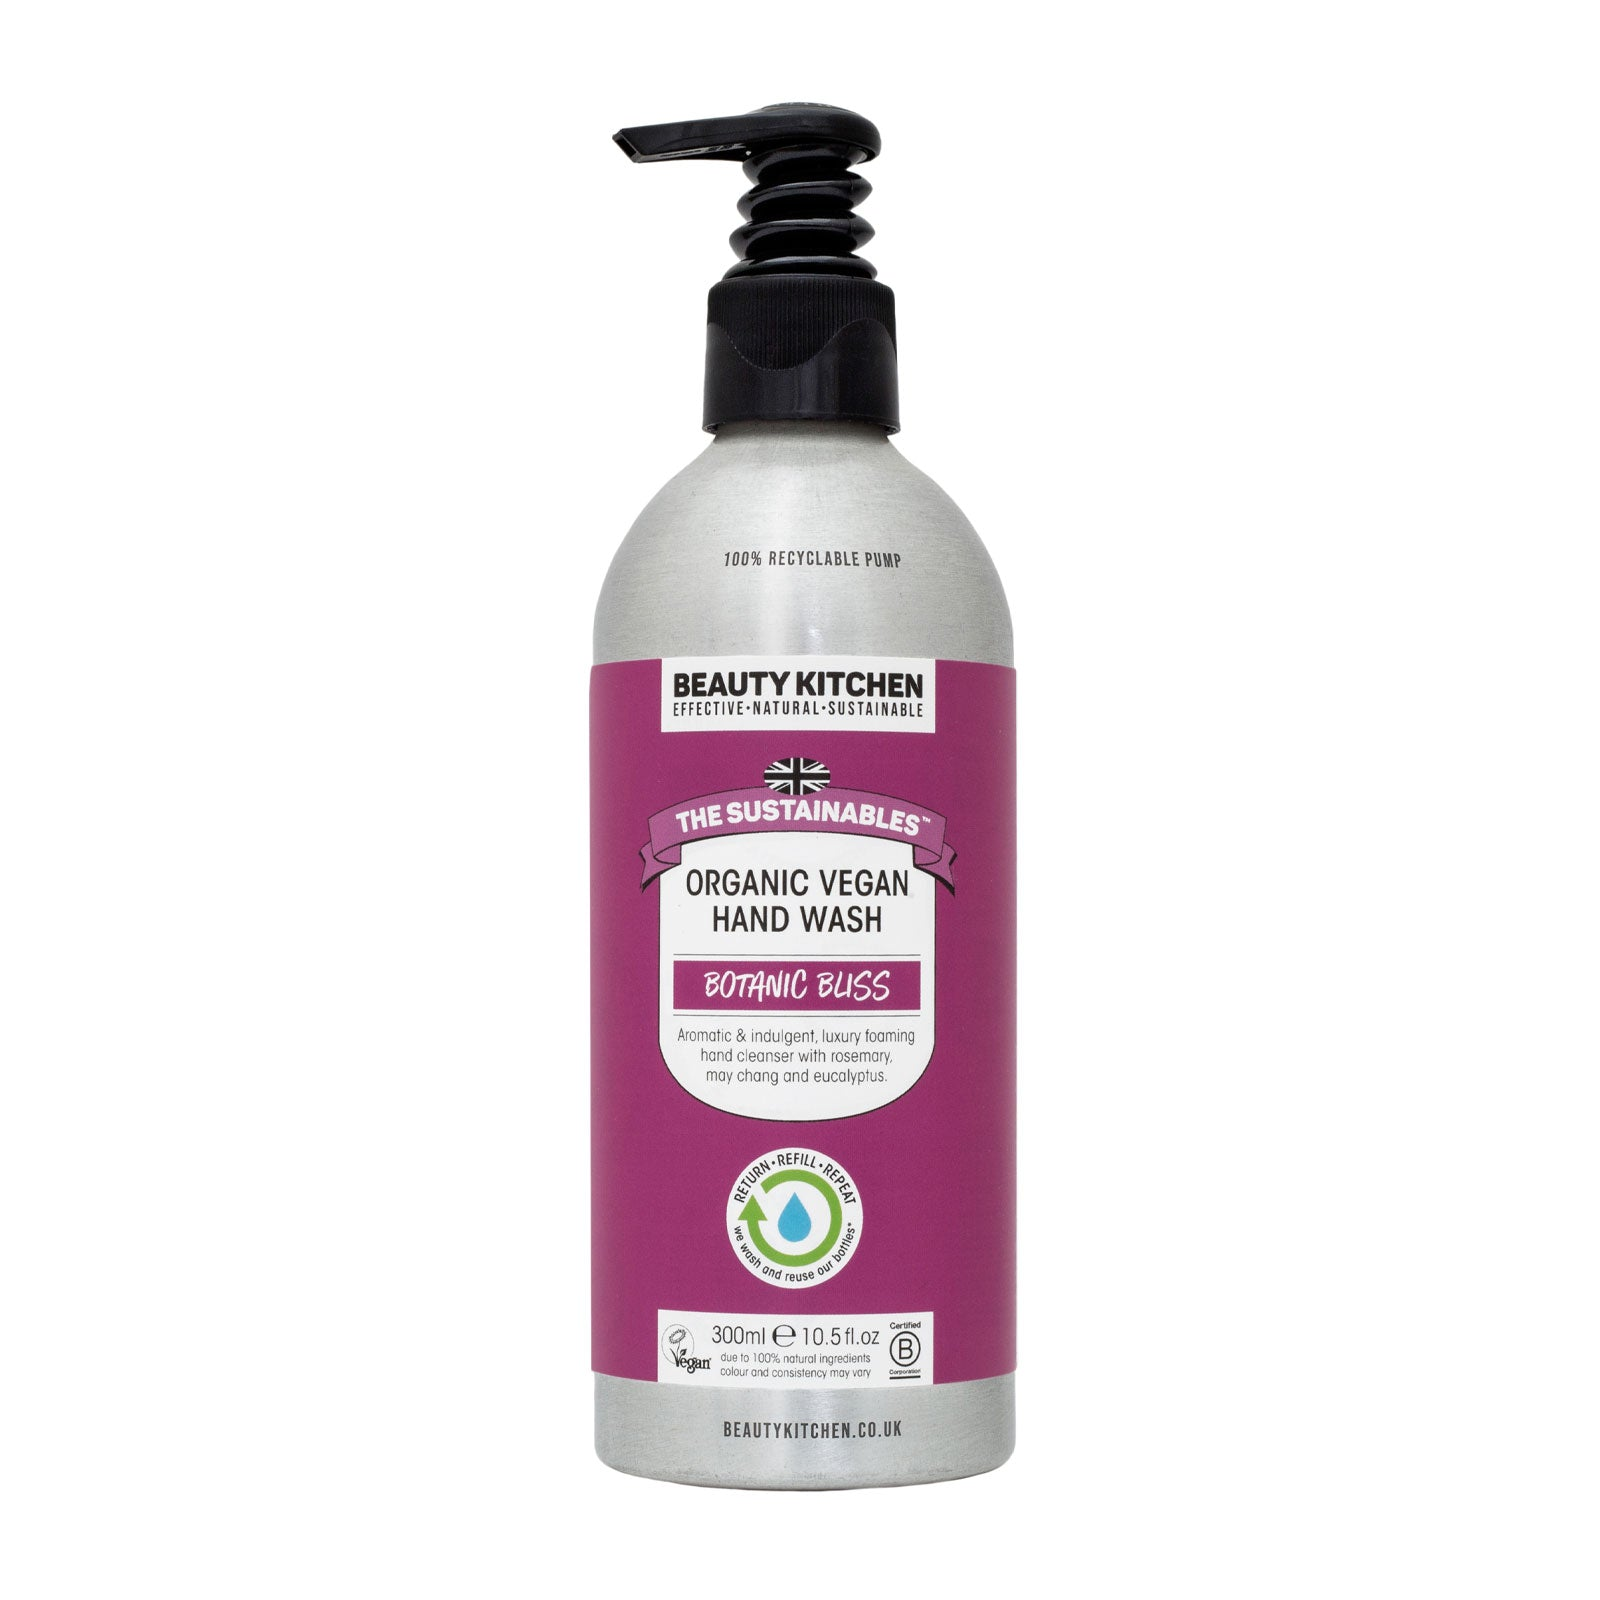 Beauty Kitchen The Sustainables Botanic Bliss Organic Vegan Hand Wash 300ml